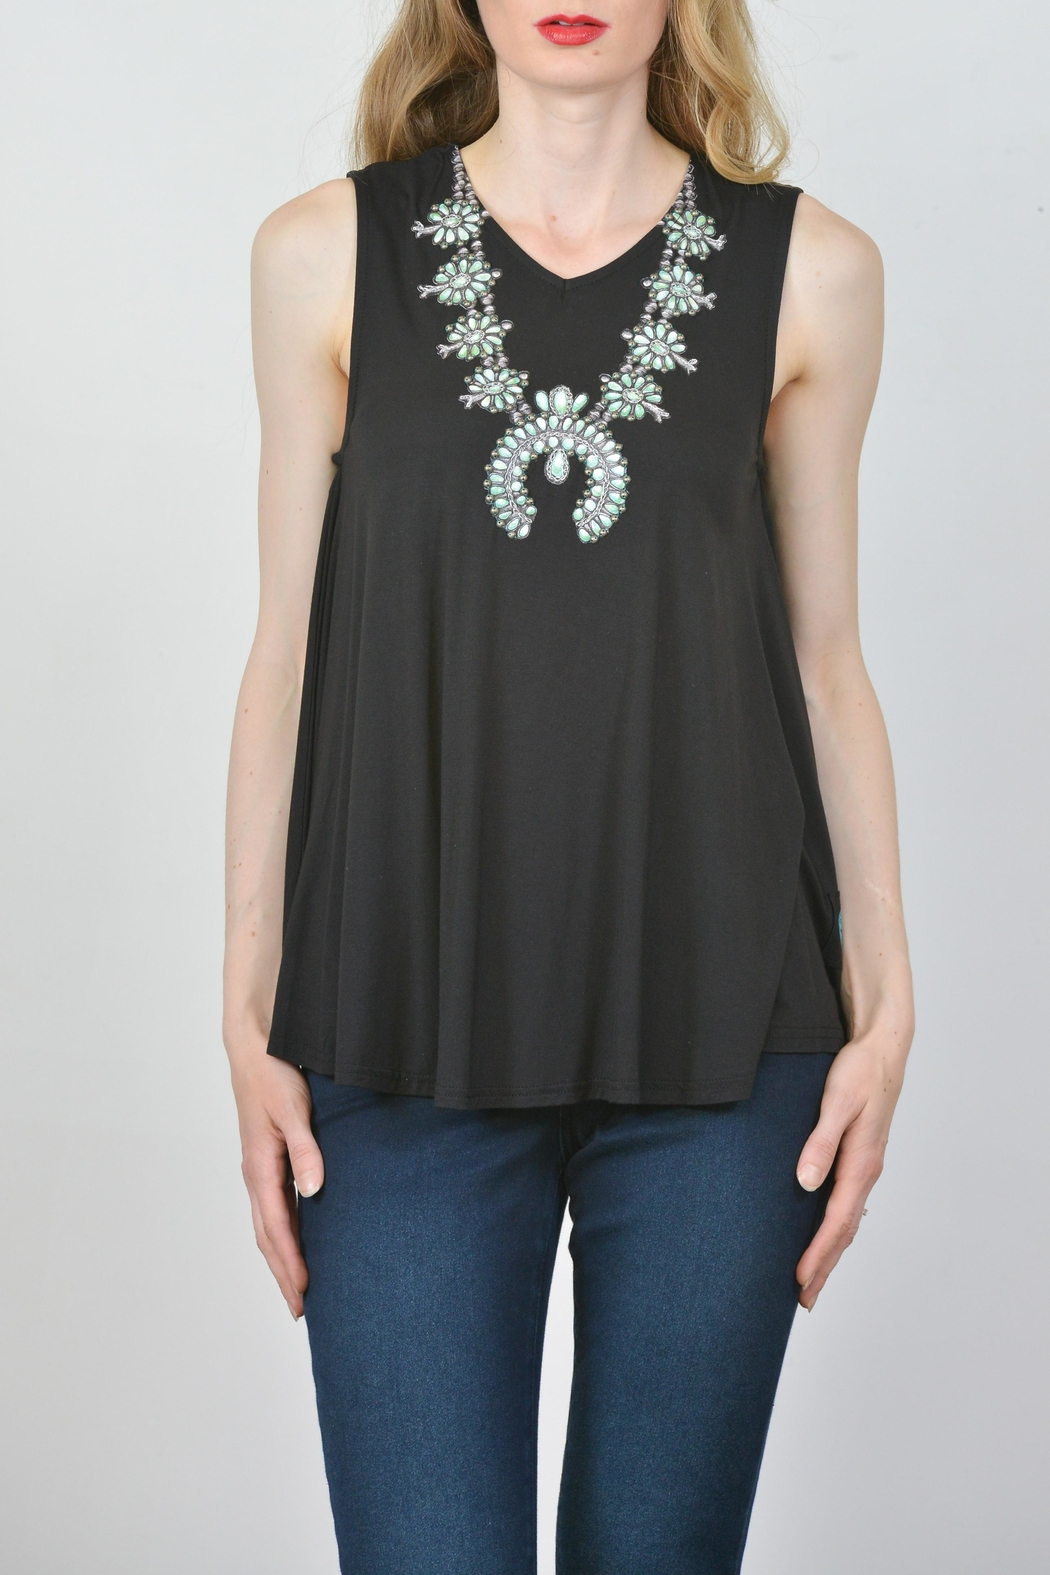 Double D Ranchwear Necklace Western Tunic - Main Image